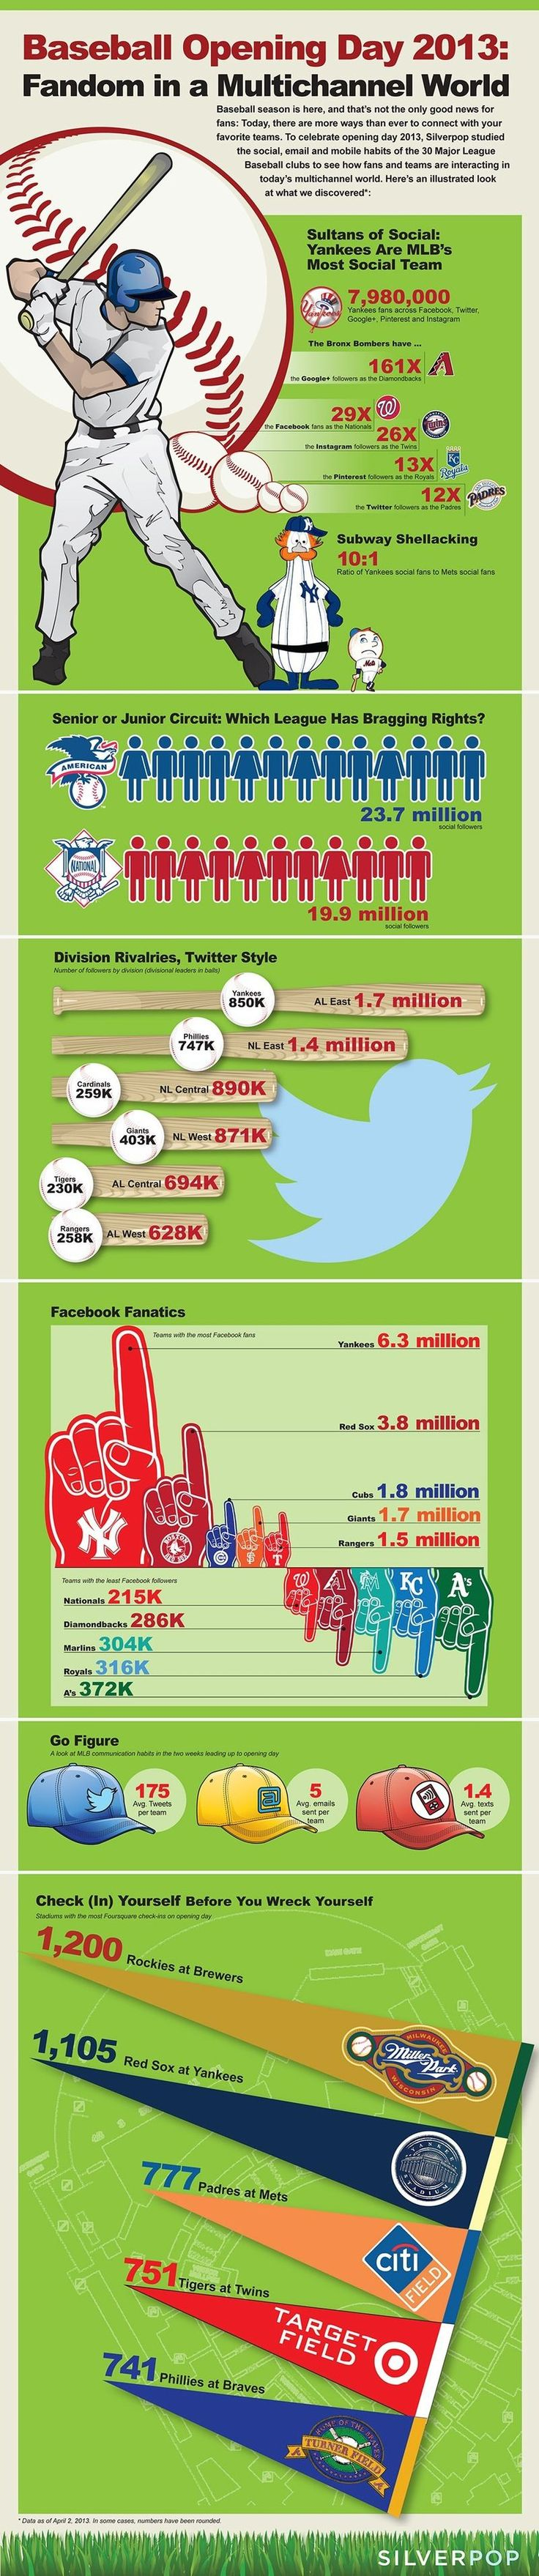 Some MLB Social Media Stats For Baseball Opening Day 2013 Infographic...we Yanks fans lead in most areas :)